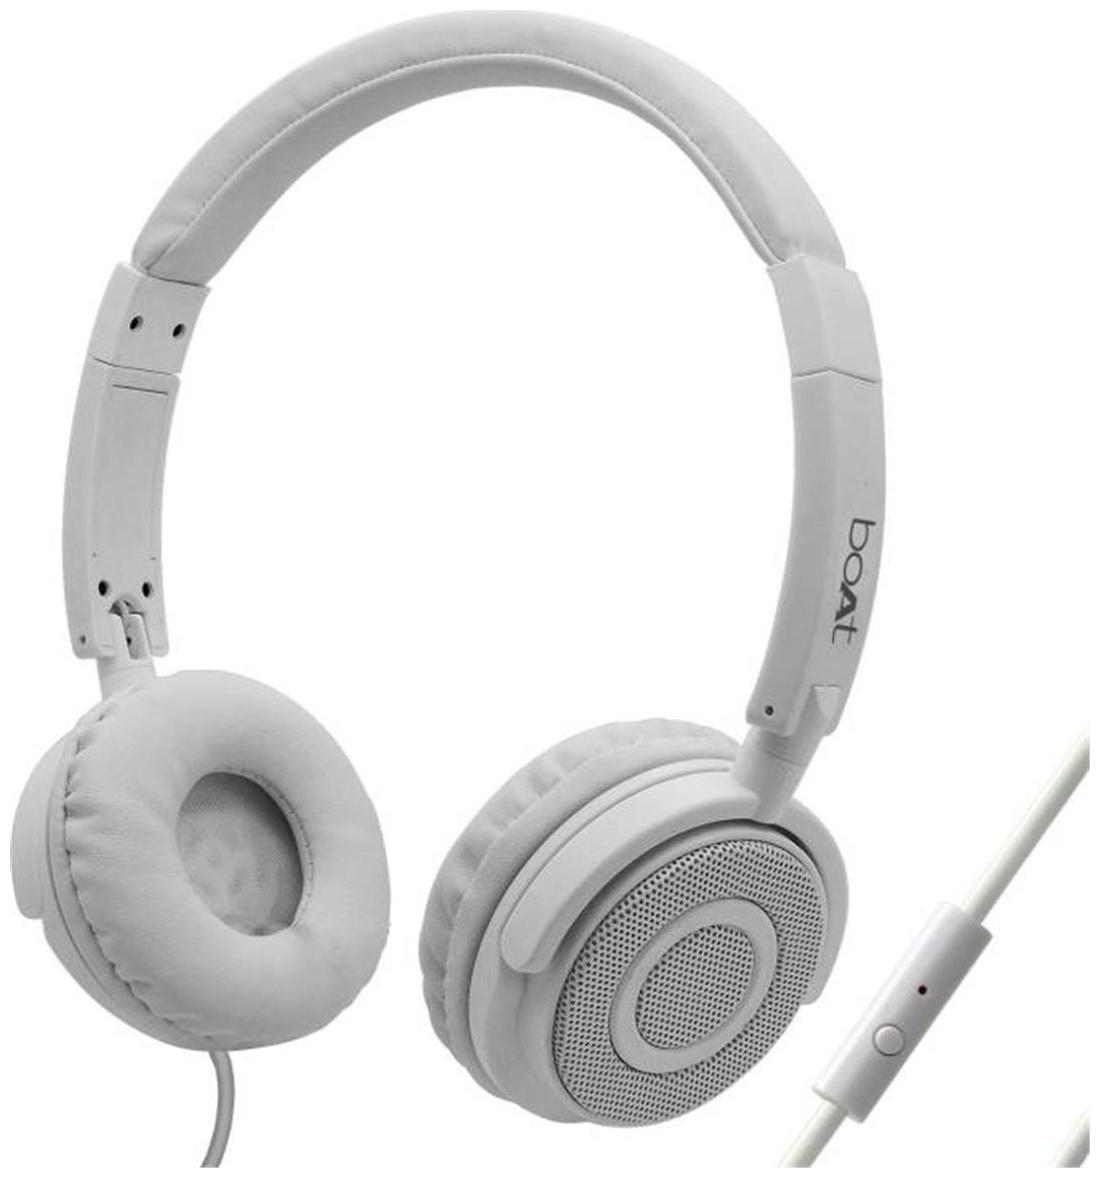 boAt BassHeads 900 Super Extra Bass On-Ear wired Headphones with Mic (White)